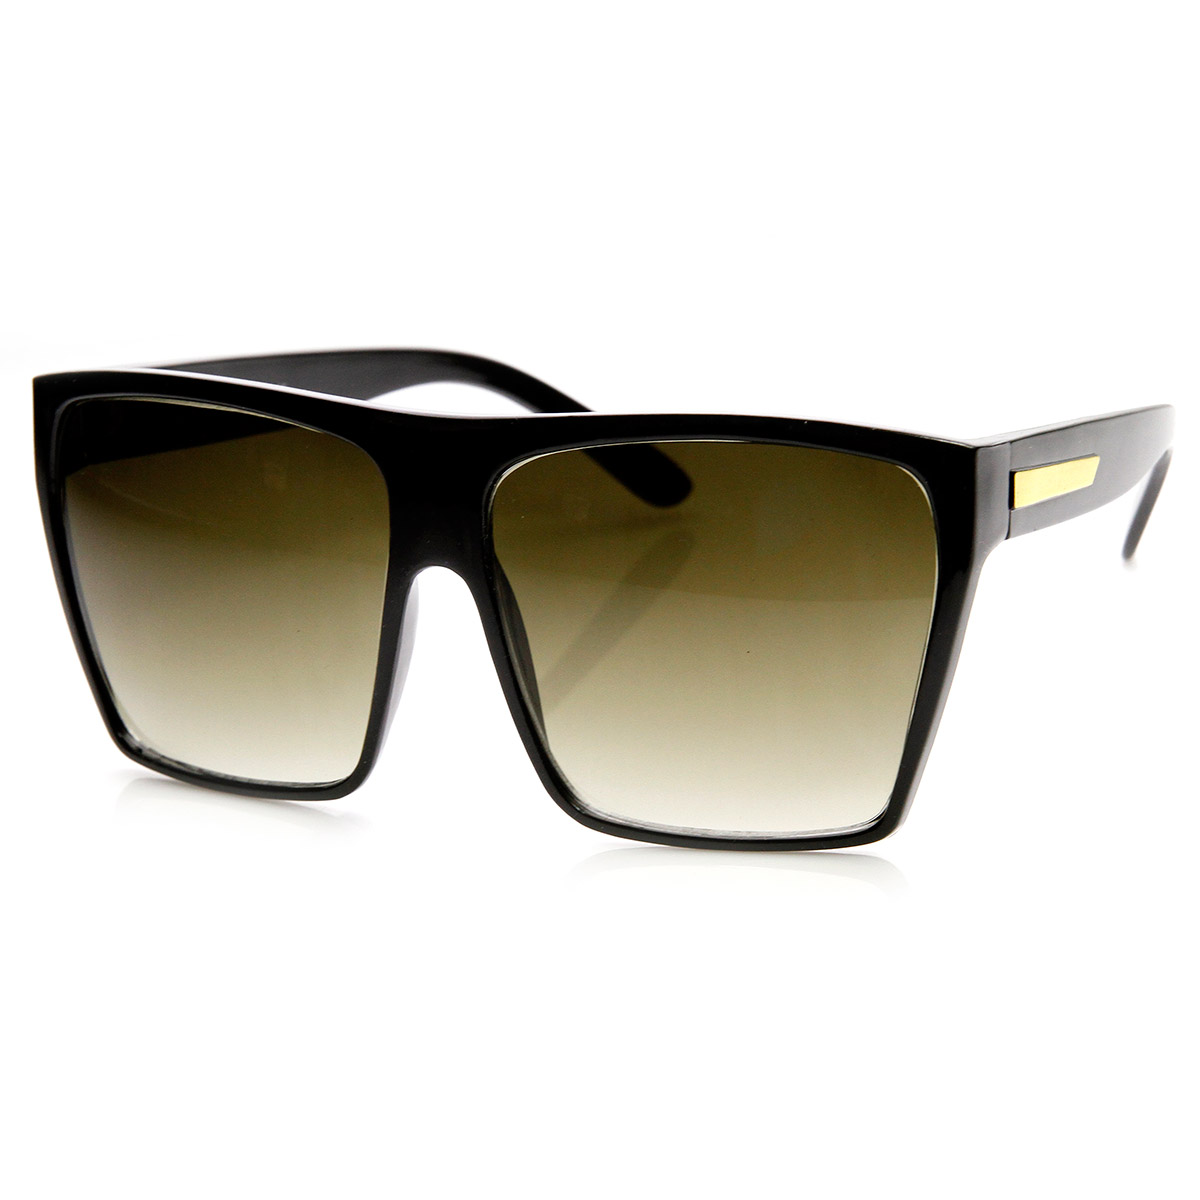 oversized sunglasses b2gy  oversized sunglasses